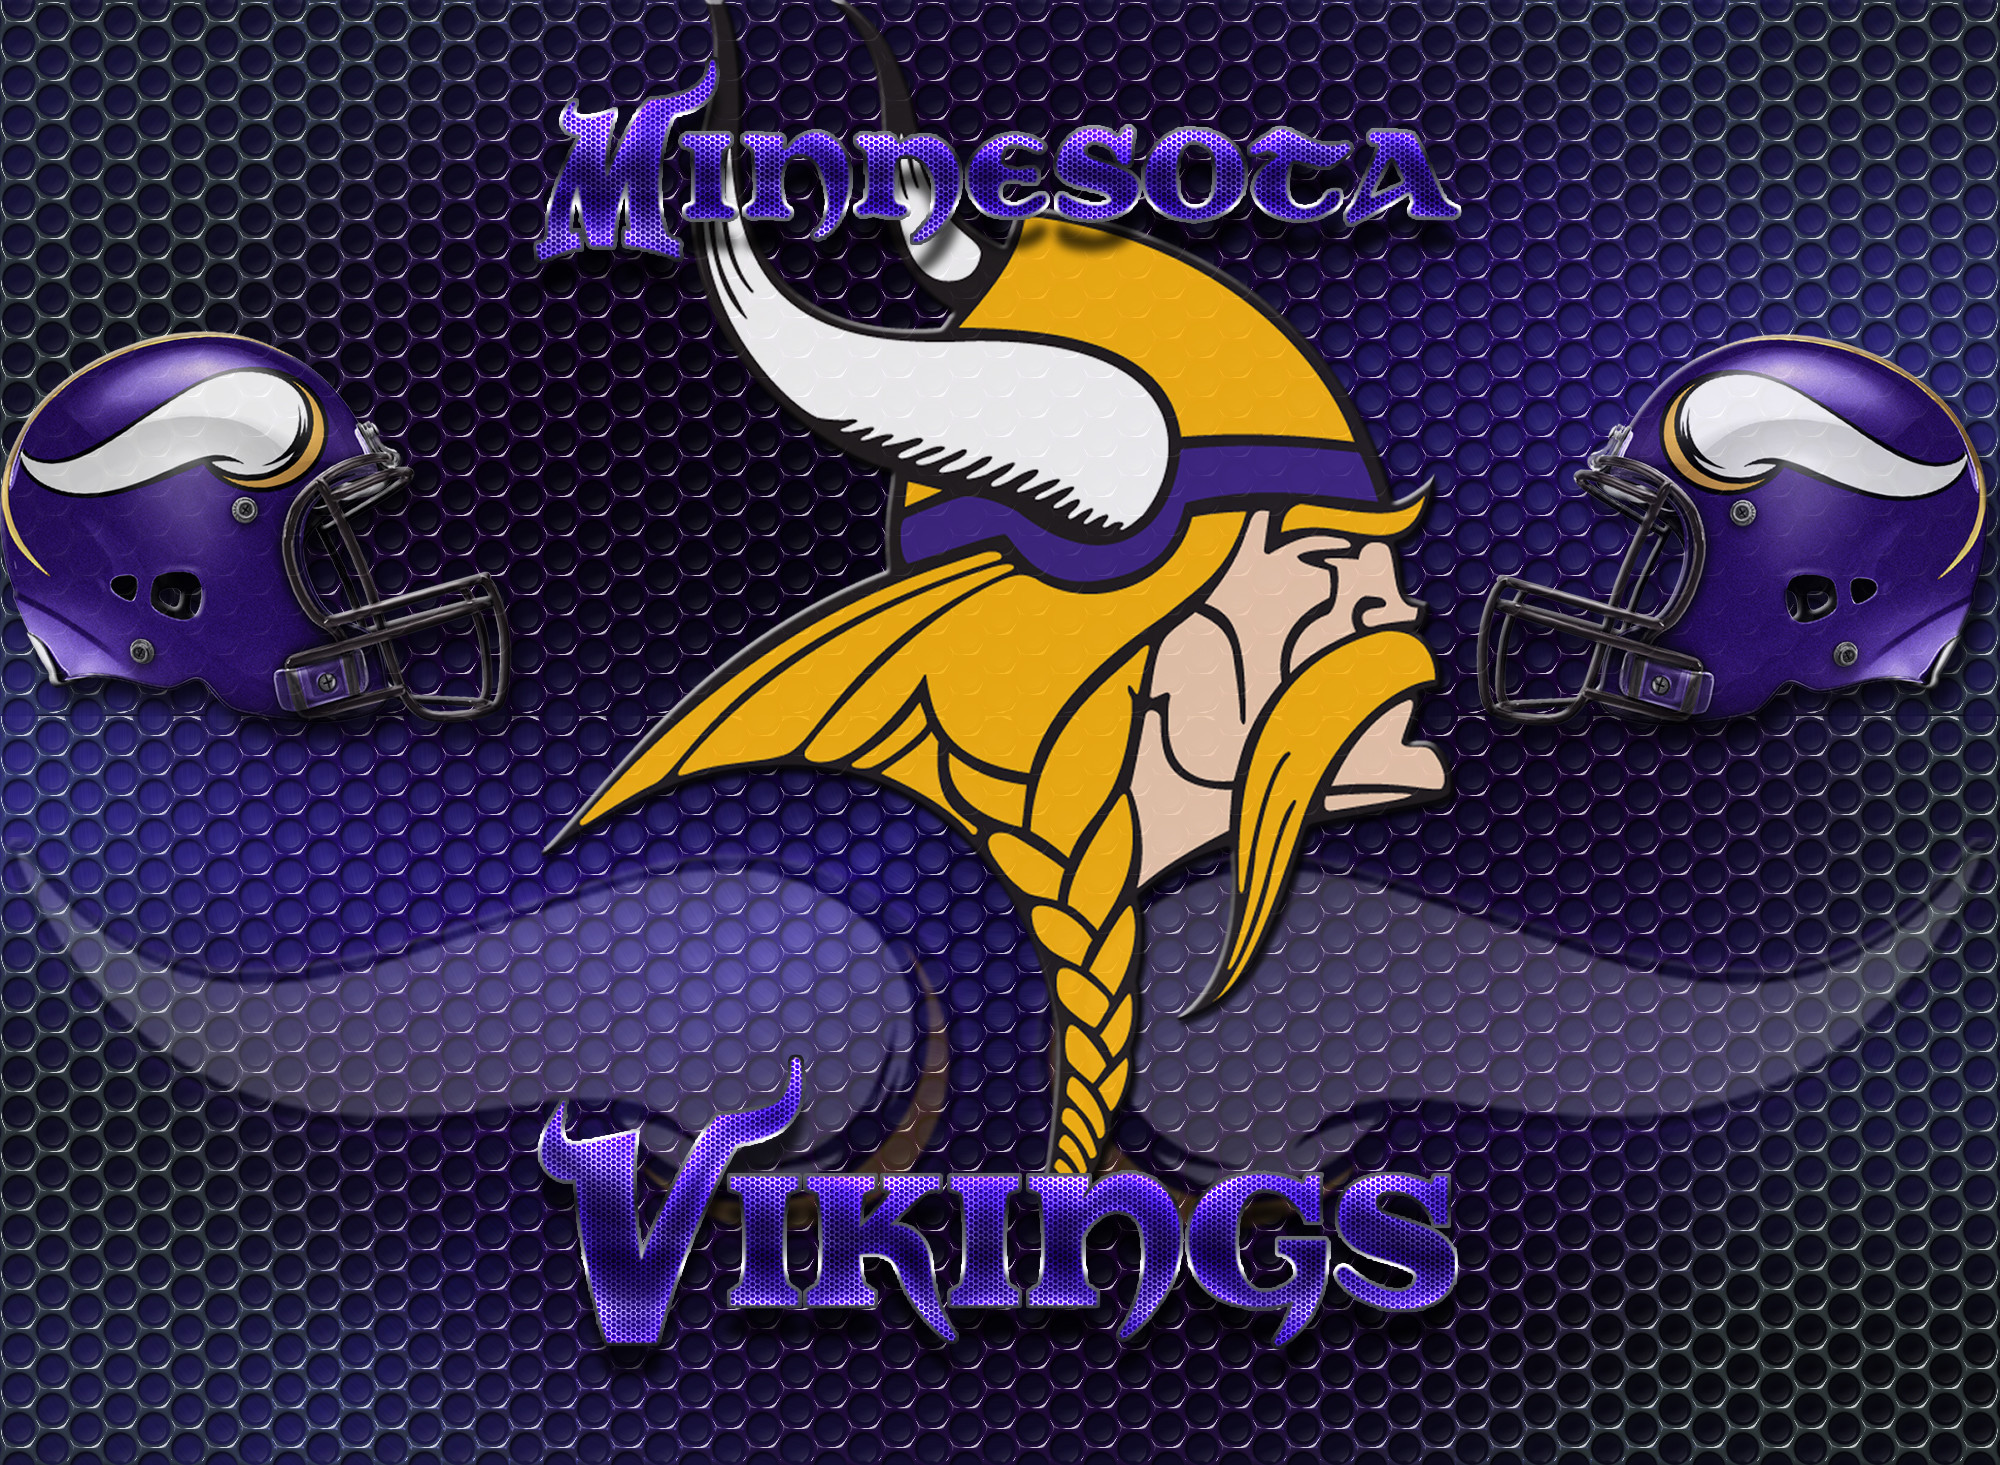 Image result for minnesota vikings images hd